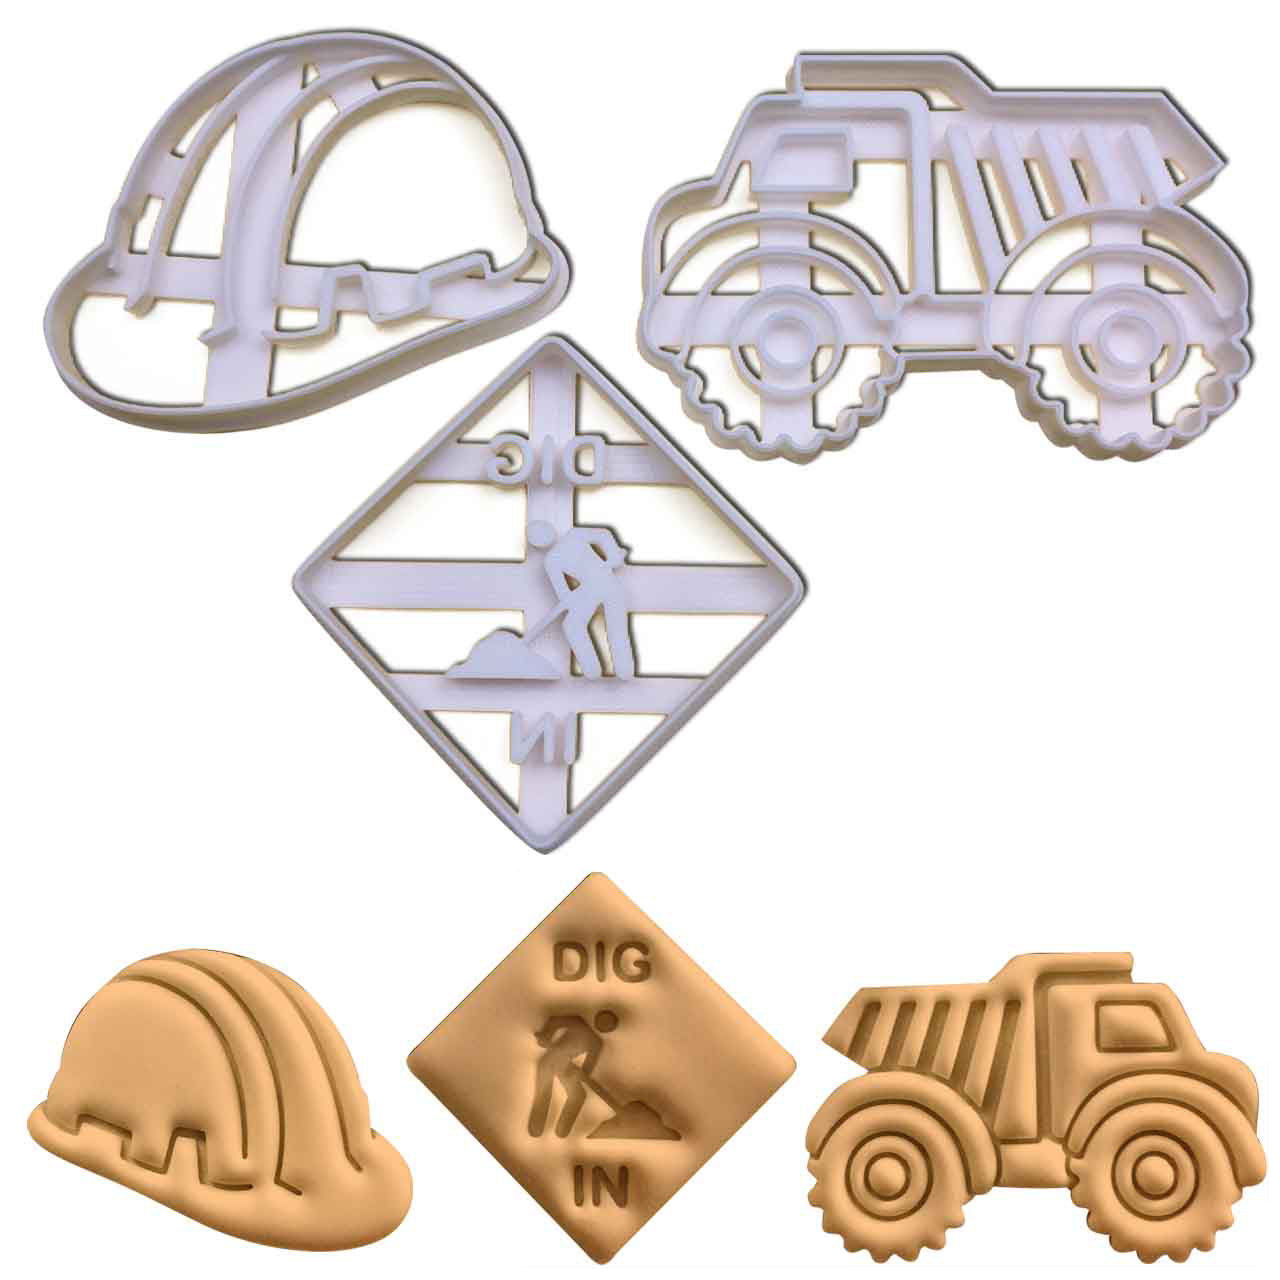 Set of construction themed cookie cutters, including a safety helmet, a dump truck and a dig in signage